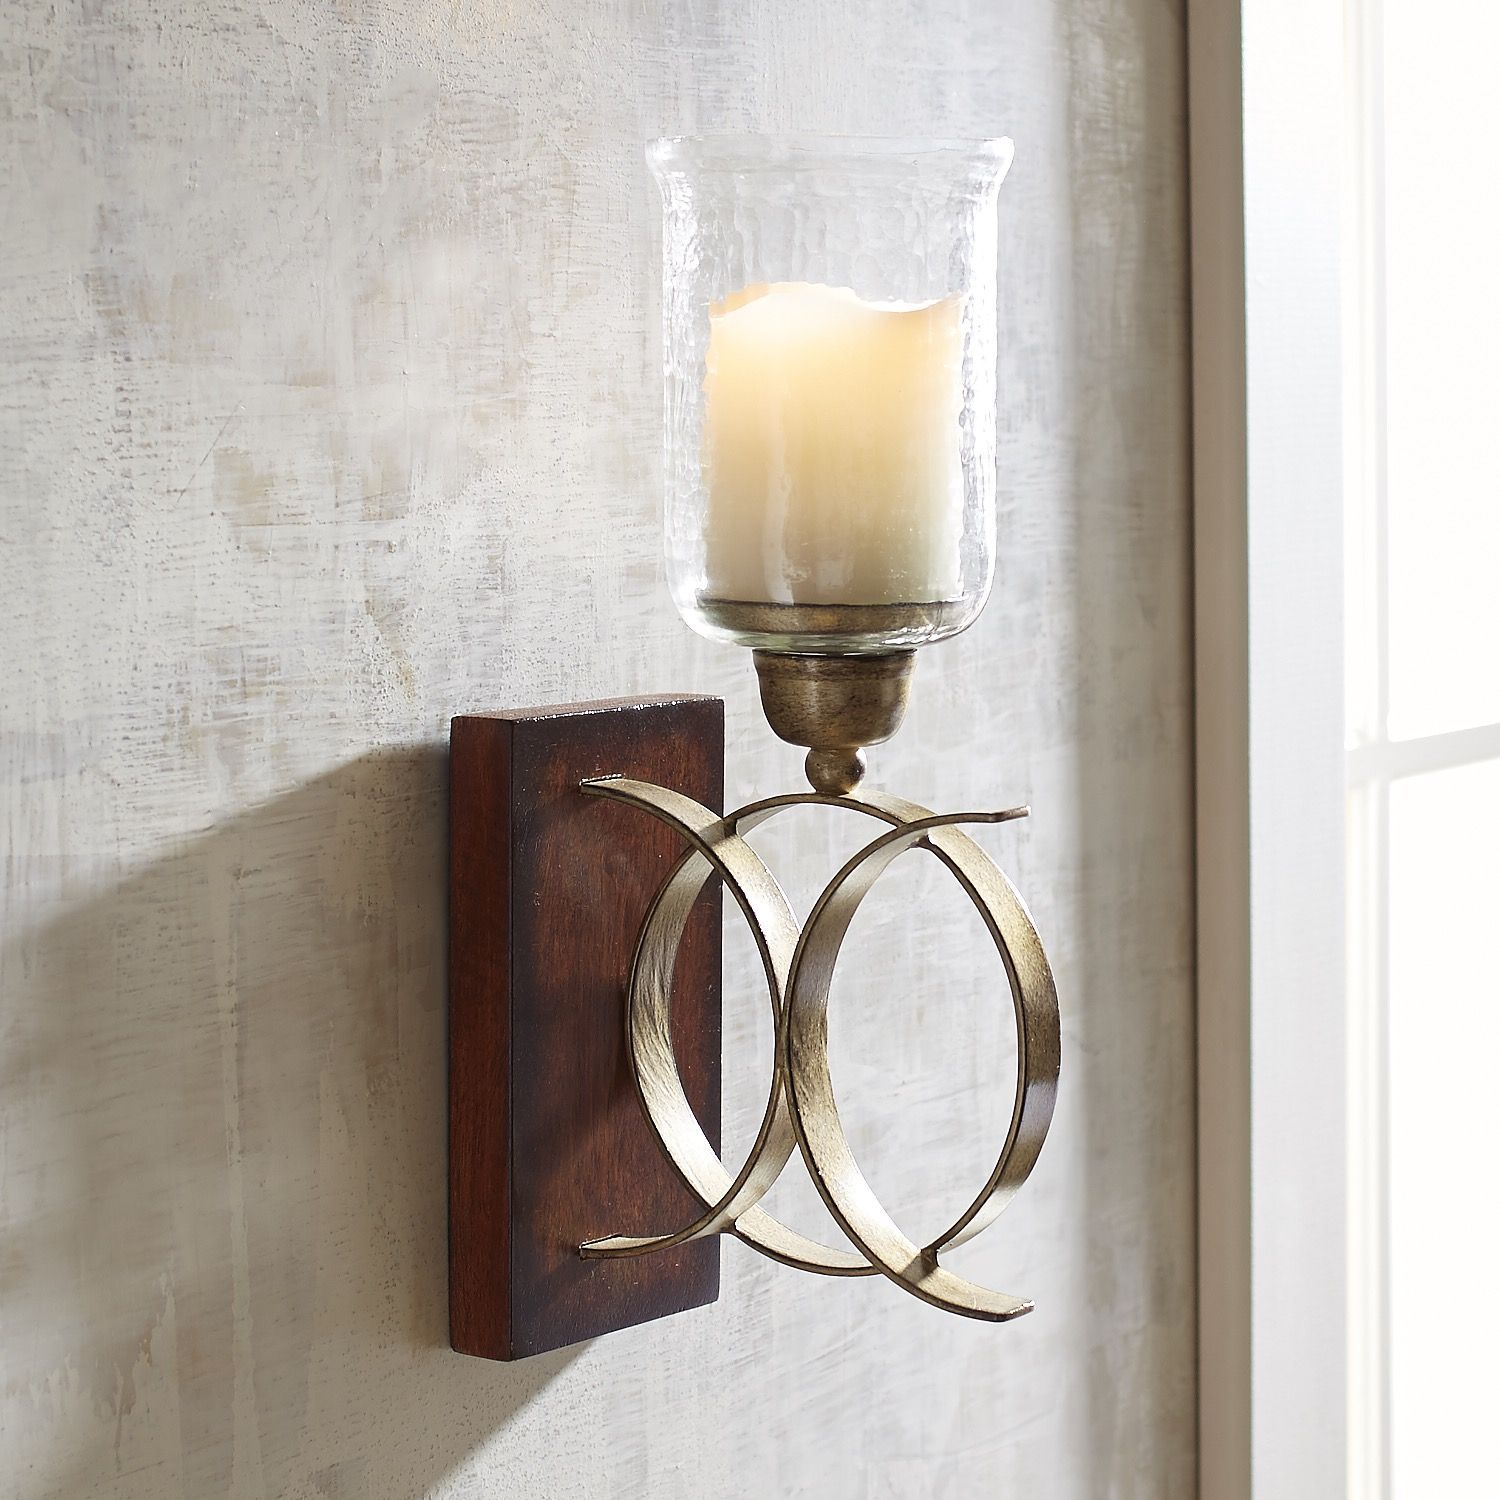 Intertwining Circle Wall Sconce Small Sconces Candle Holder Wall Sconce Wall Candles